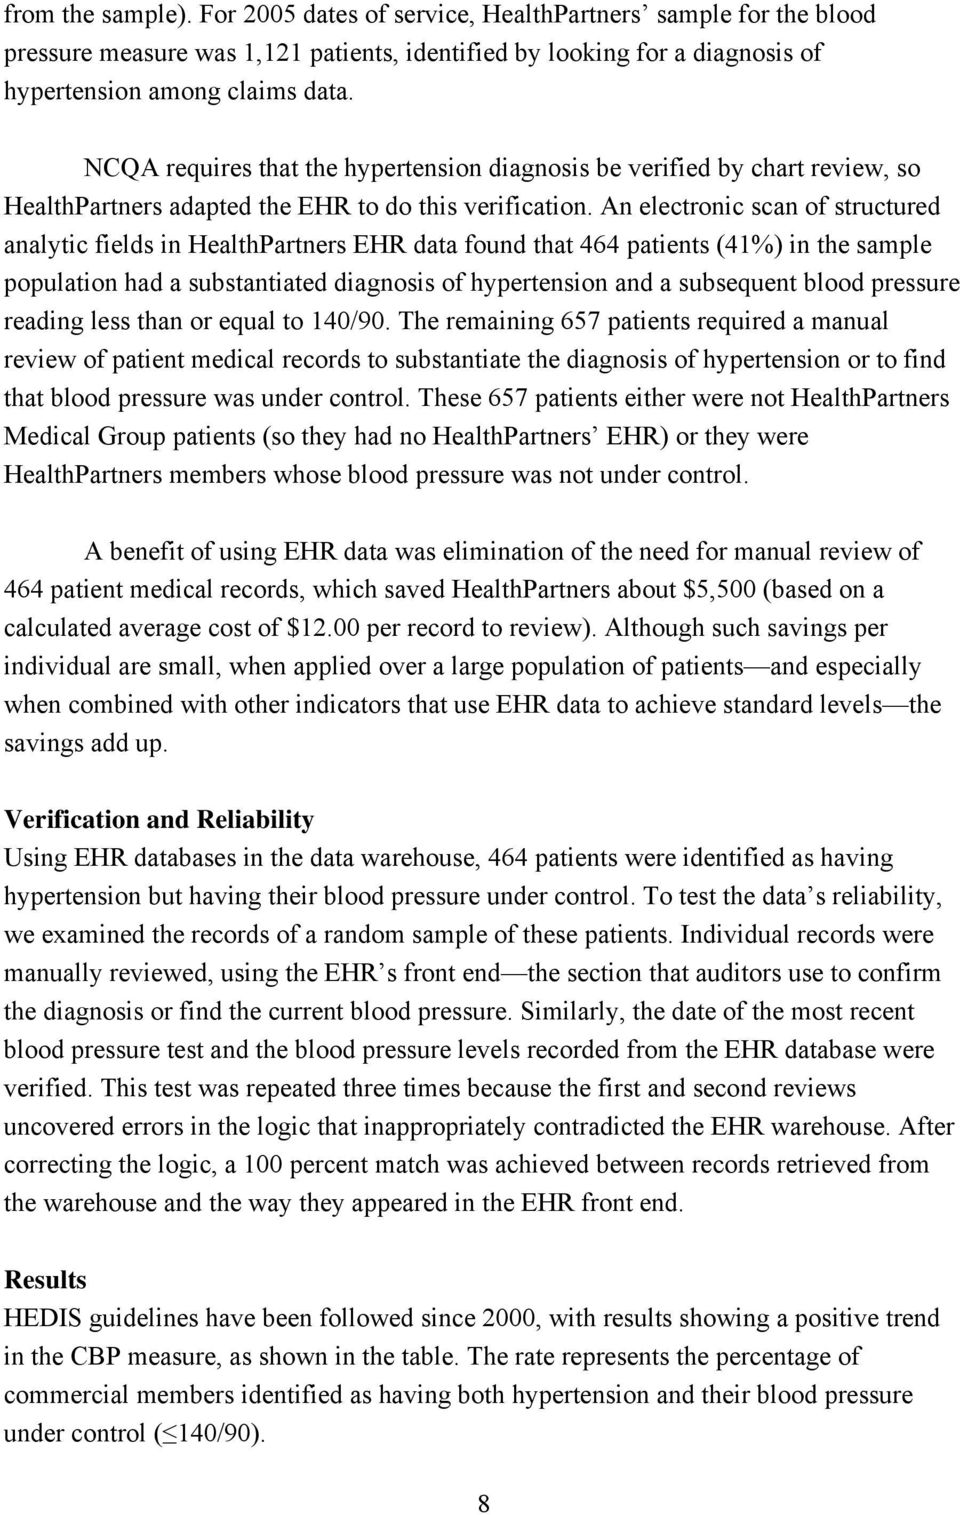 An electronic scan of structured analytic fields in HealthPartners EHR data found that 464 patients (41%) in the sample population had a substantiated diagnosis of hypertension and a subsequent blood